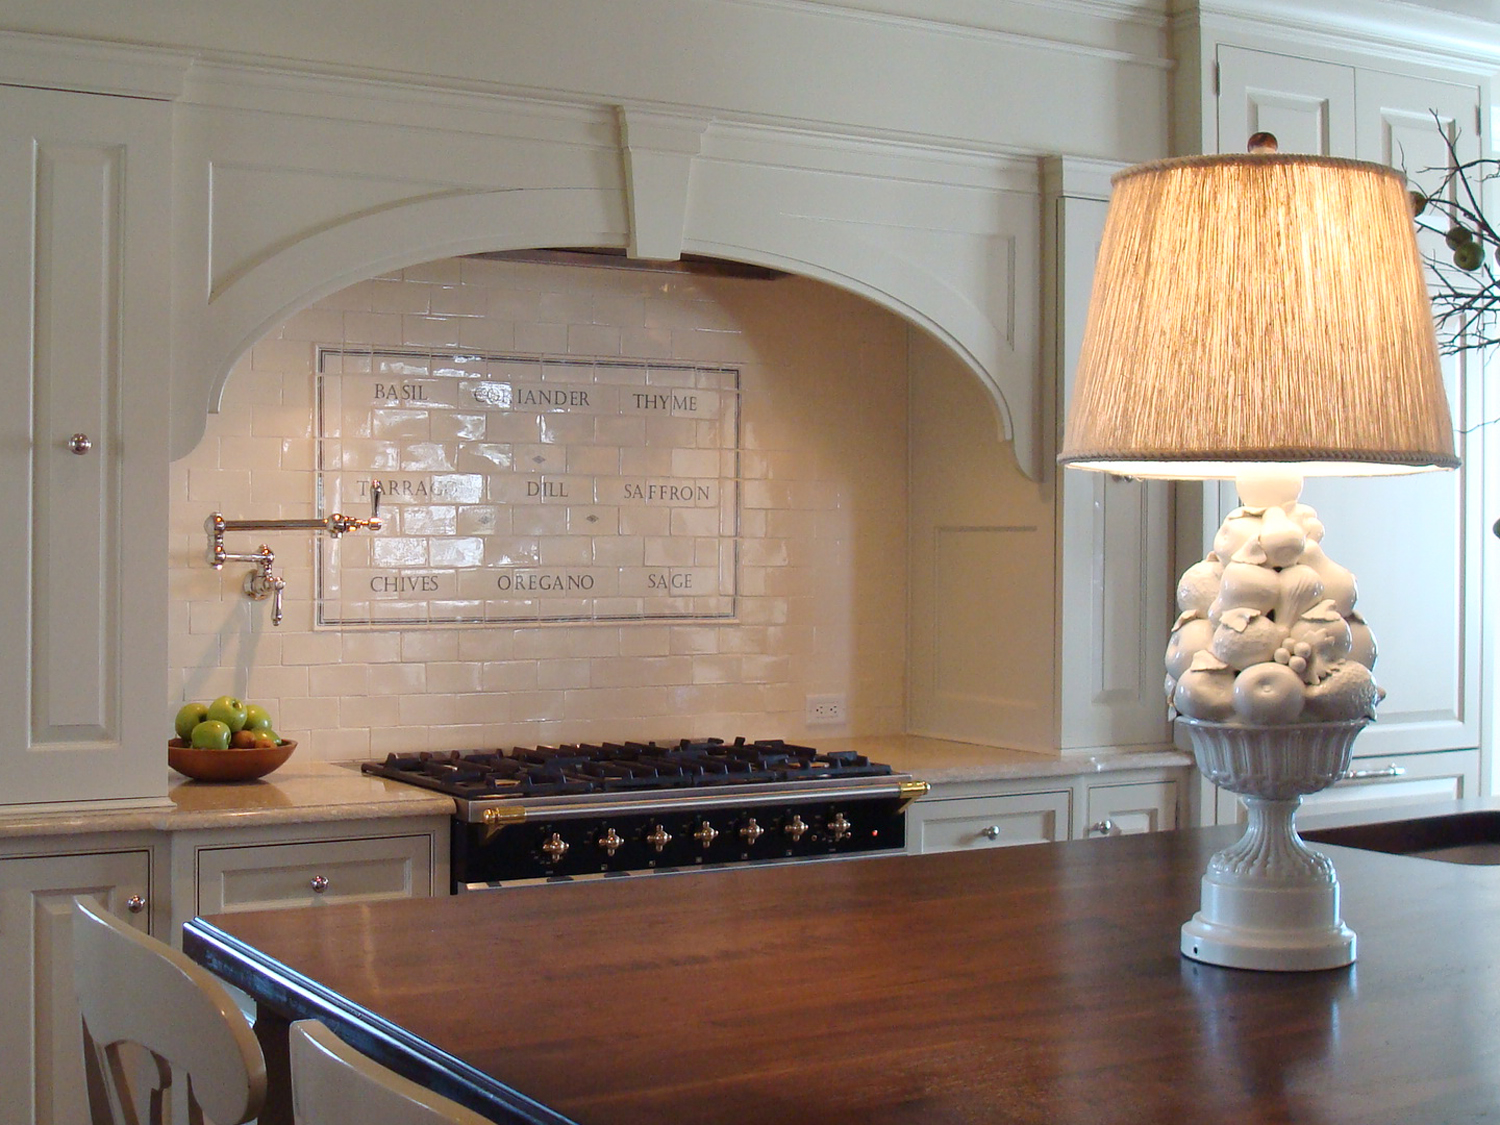 Renovation-colonial-kitchen-stove-old-greenwich-ct-interior-w.jpg